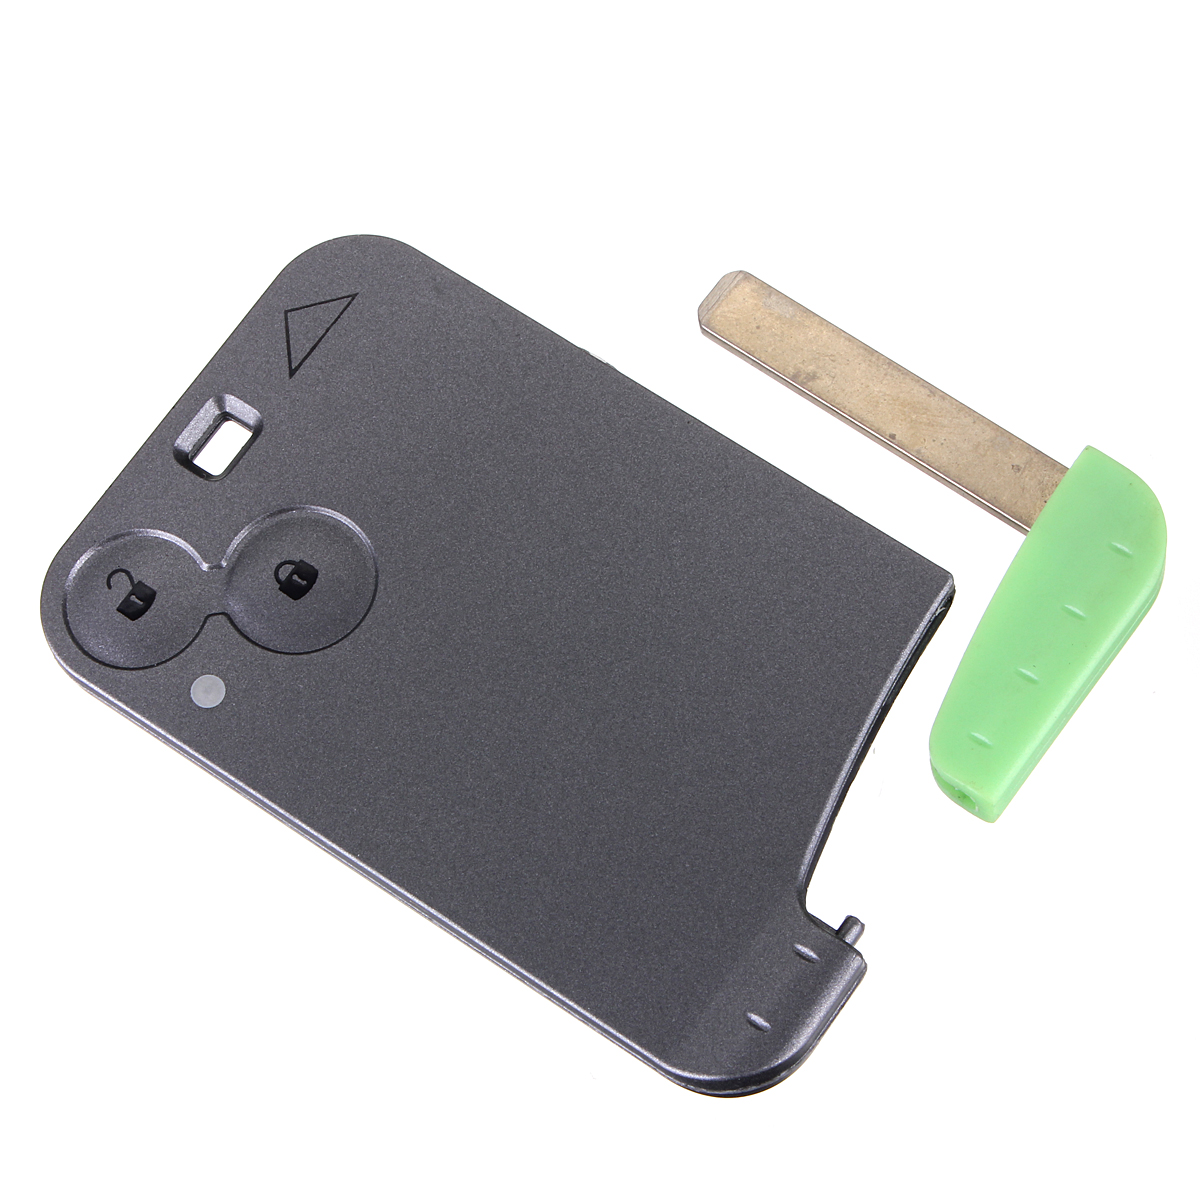 keyless remote card repair kit key blade case 2bt for renault laguna 2 battery ebay. Black Bedroom Furniture Sets. Home Design Ideas